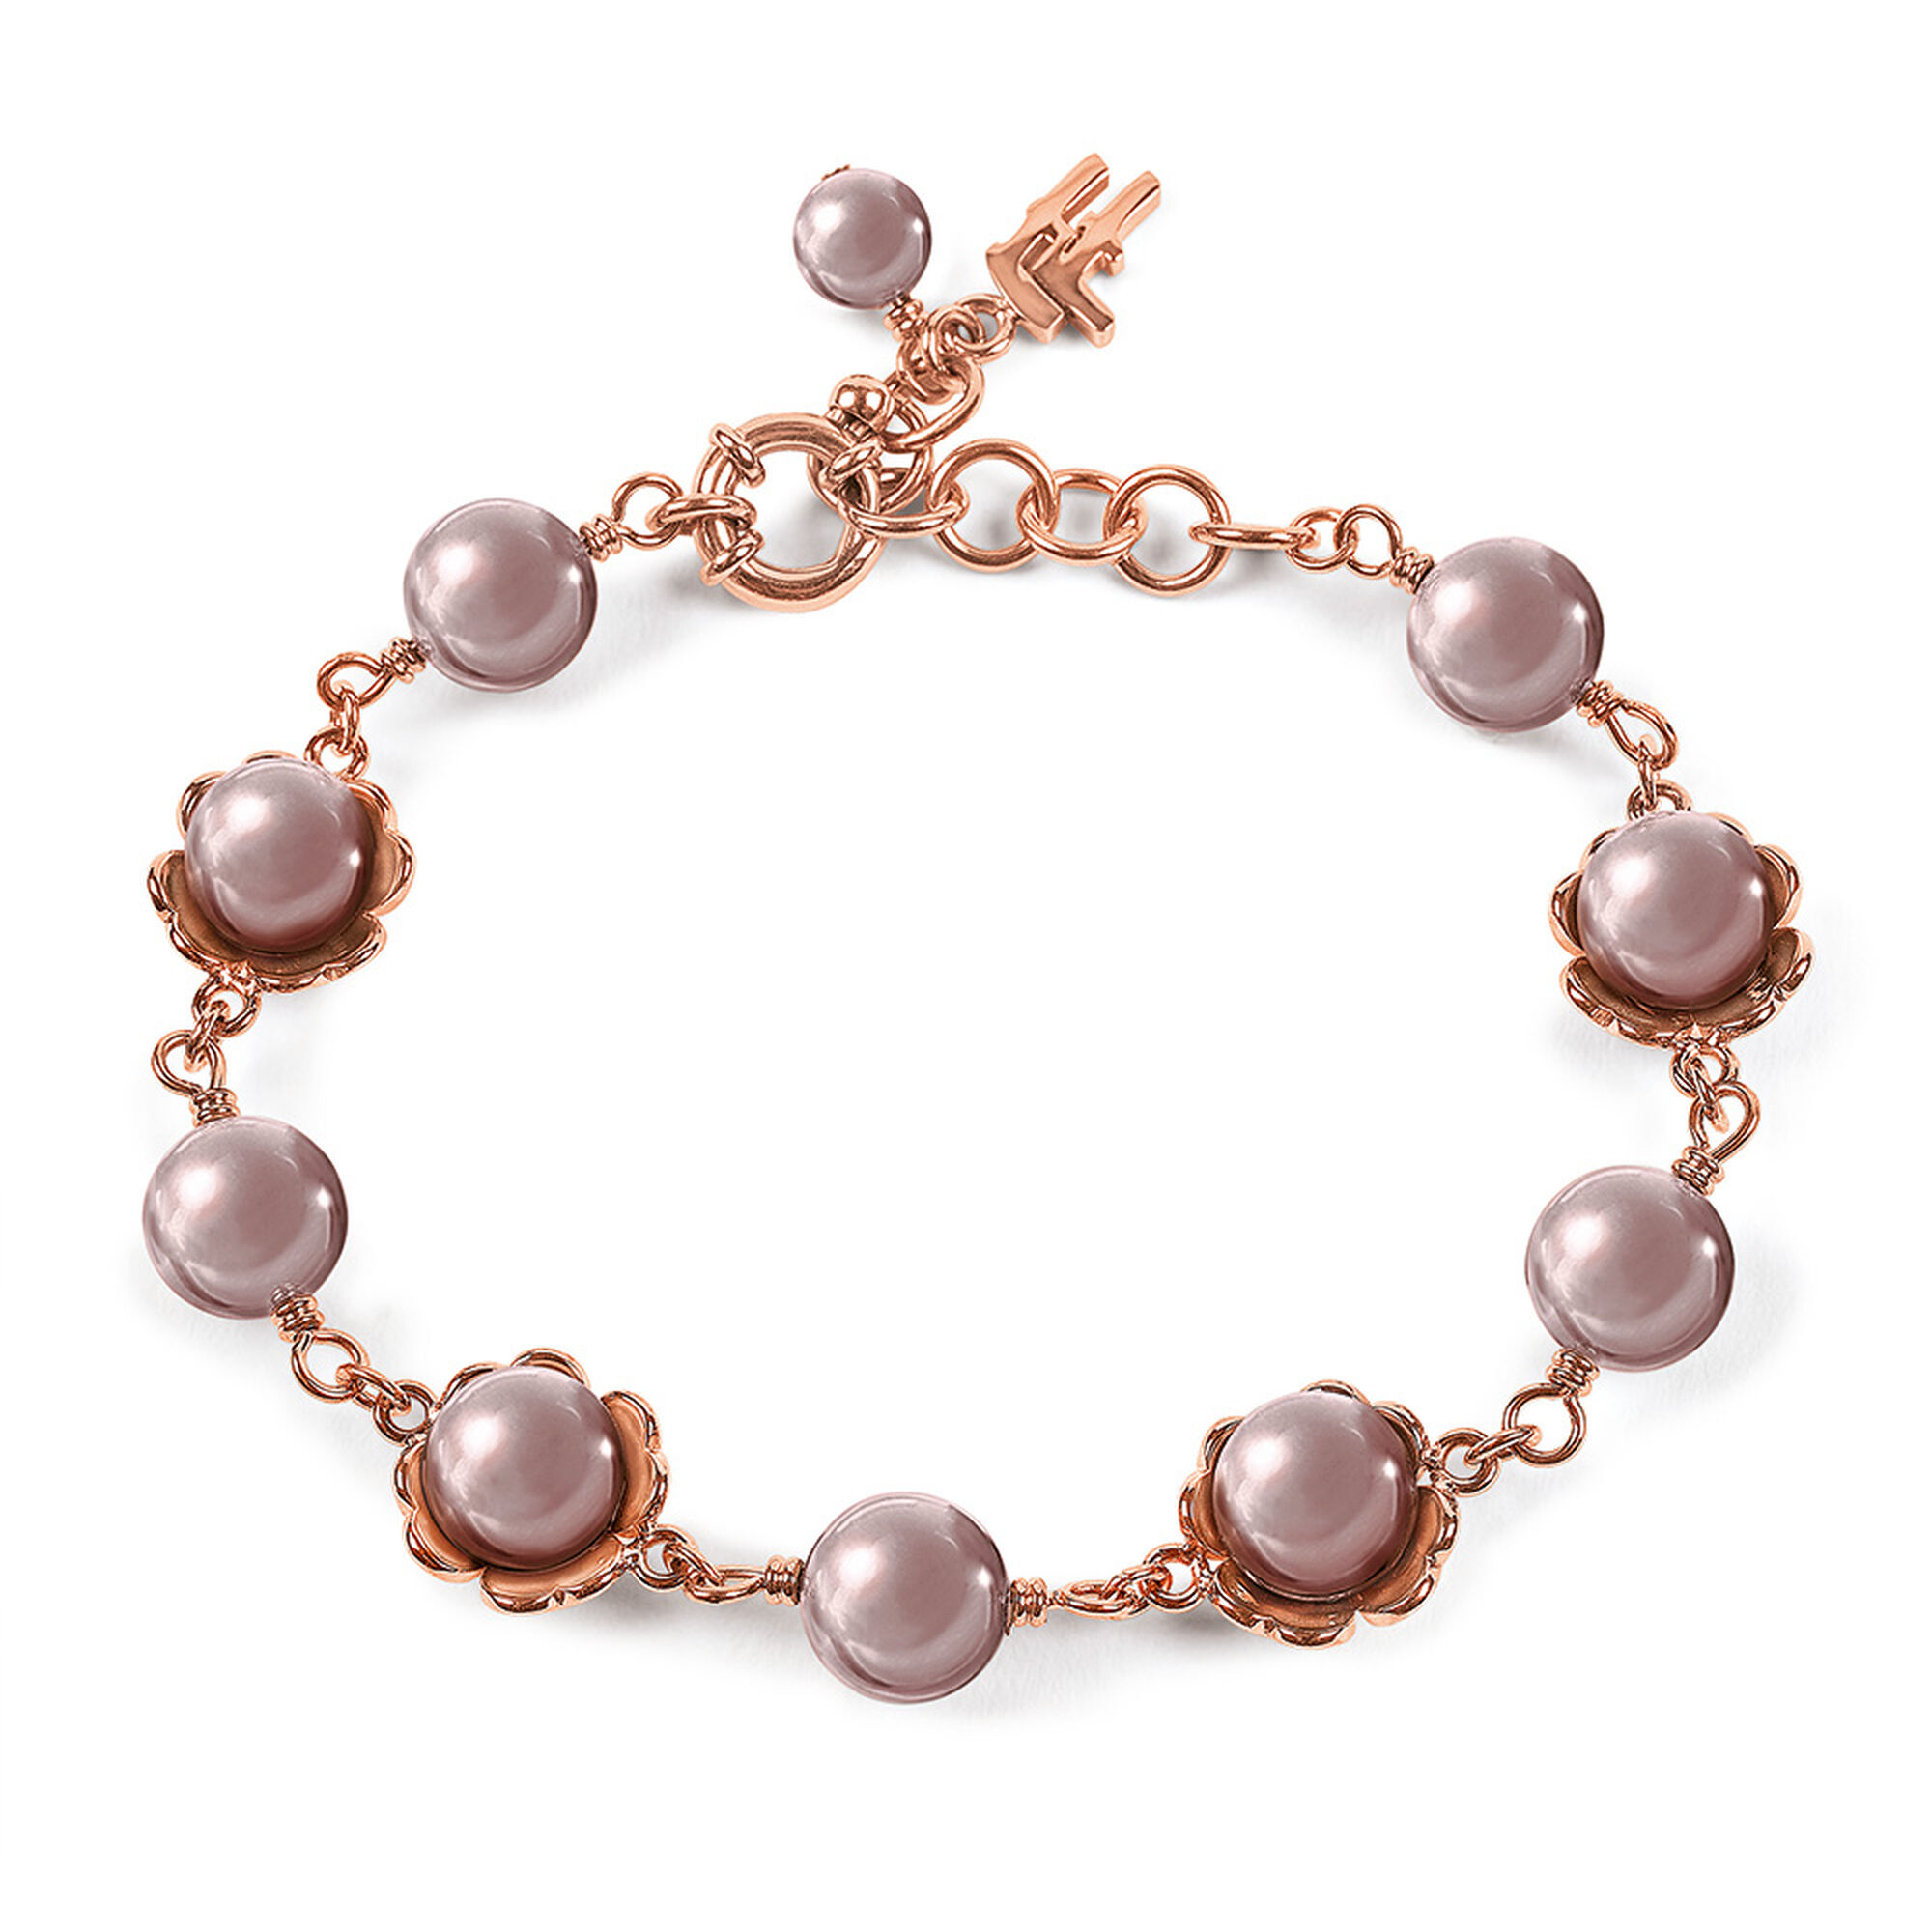 of tiffany fmt pearl bracelets signature with id bracelet white ed pearls fit gold wid constrain jewelry hei